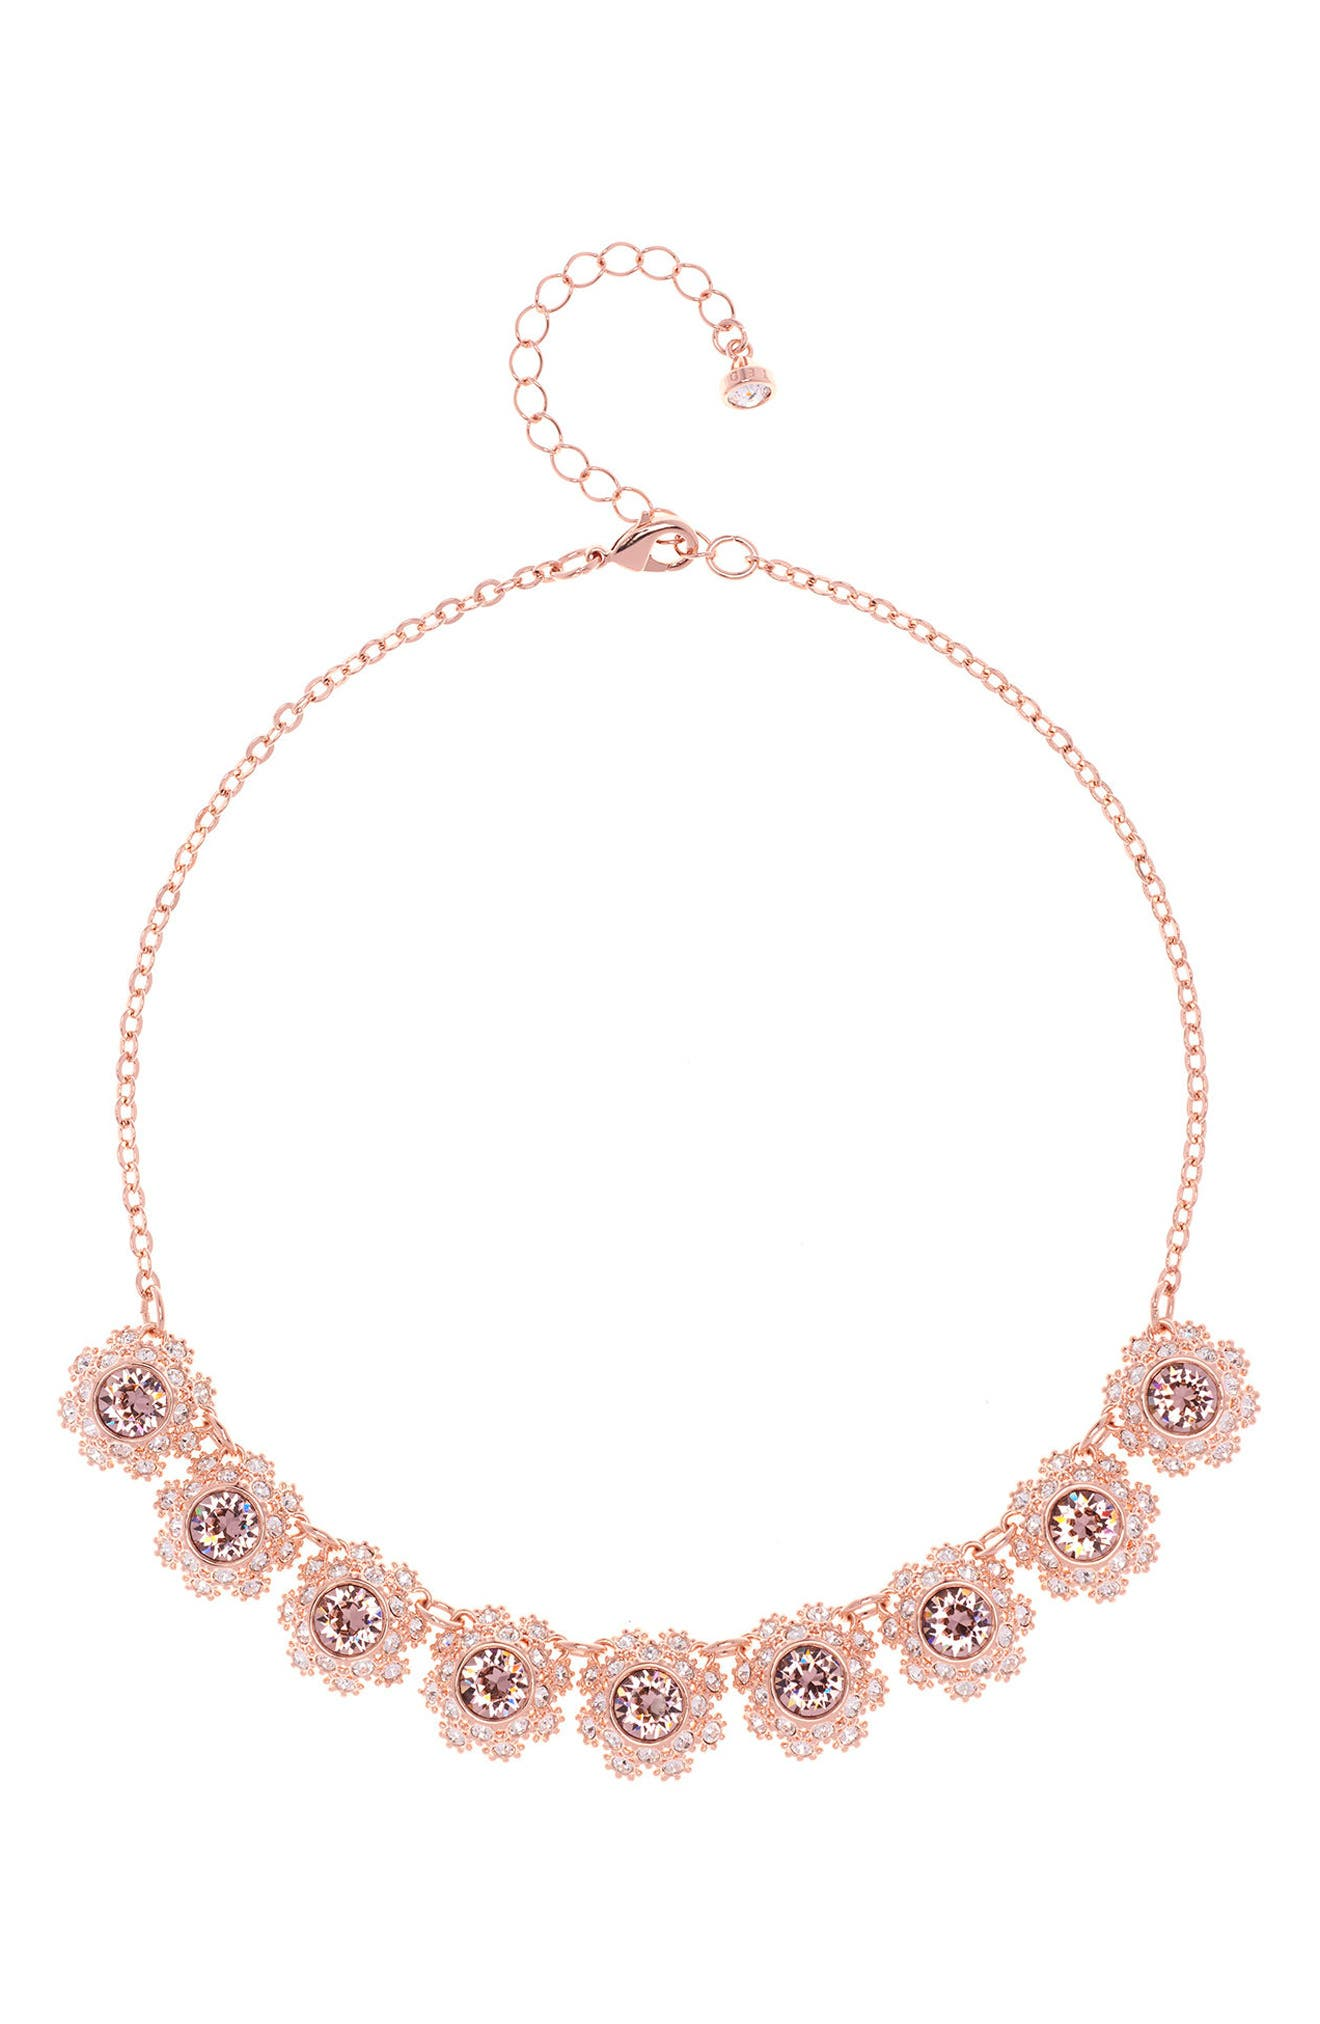 Main Image - Ted Baker London Crystal Daisy Lace Collar Necklace